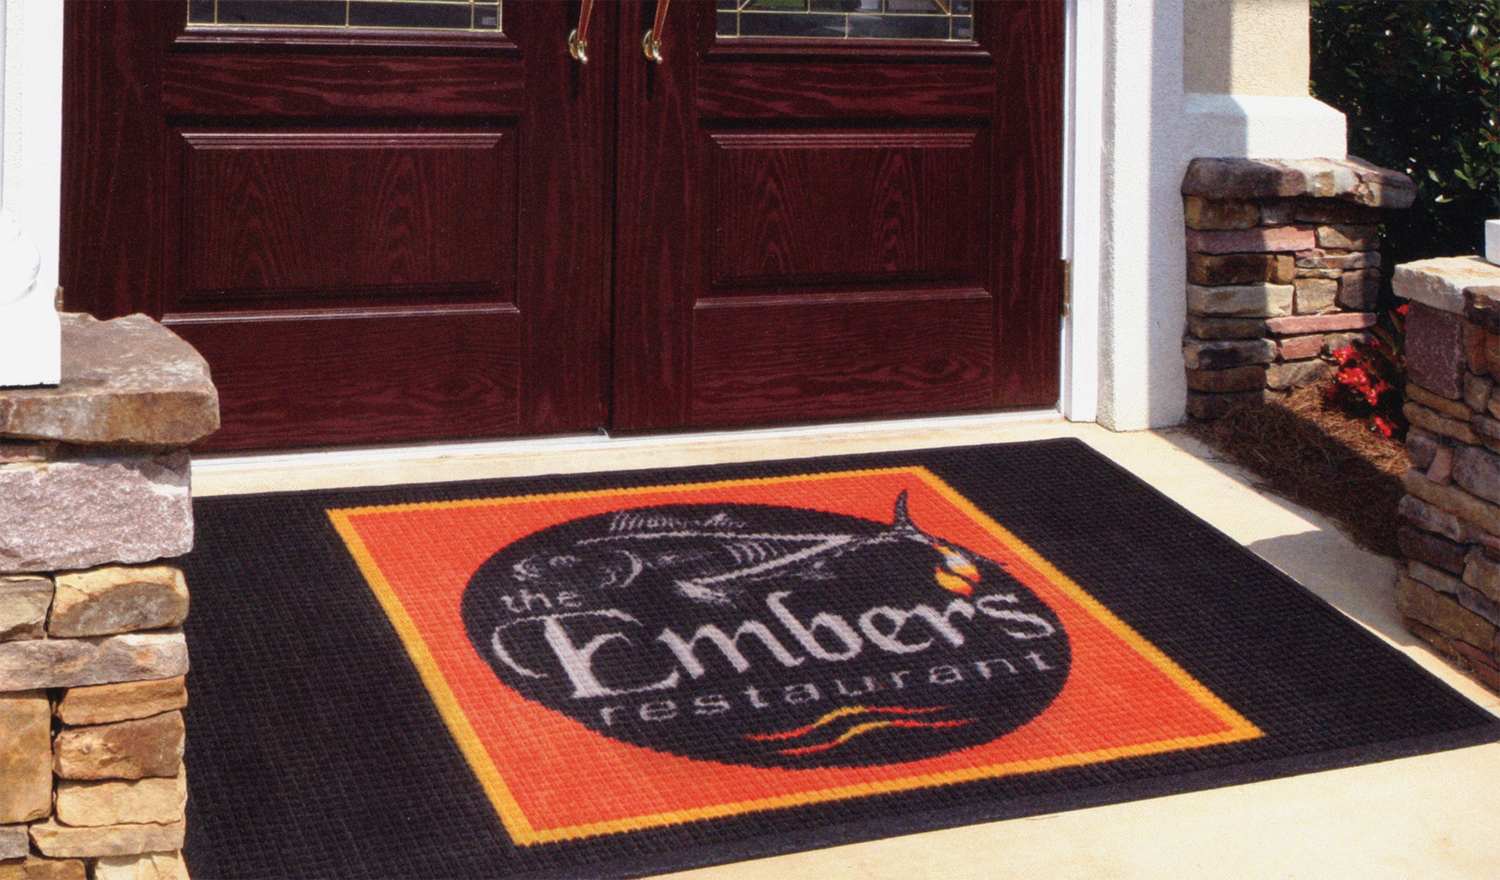 Floor mats business - New Waterhog Impressions Logo Floor Matsthese Durable Indoor Or Outdoor Carpet Mats Are A Great Way To Advertise At Your Business Entrance